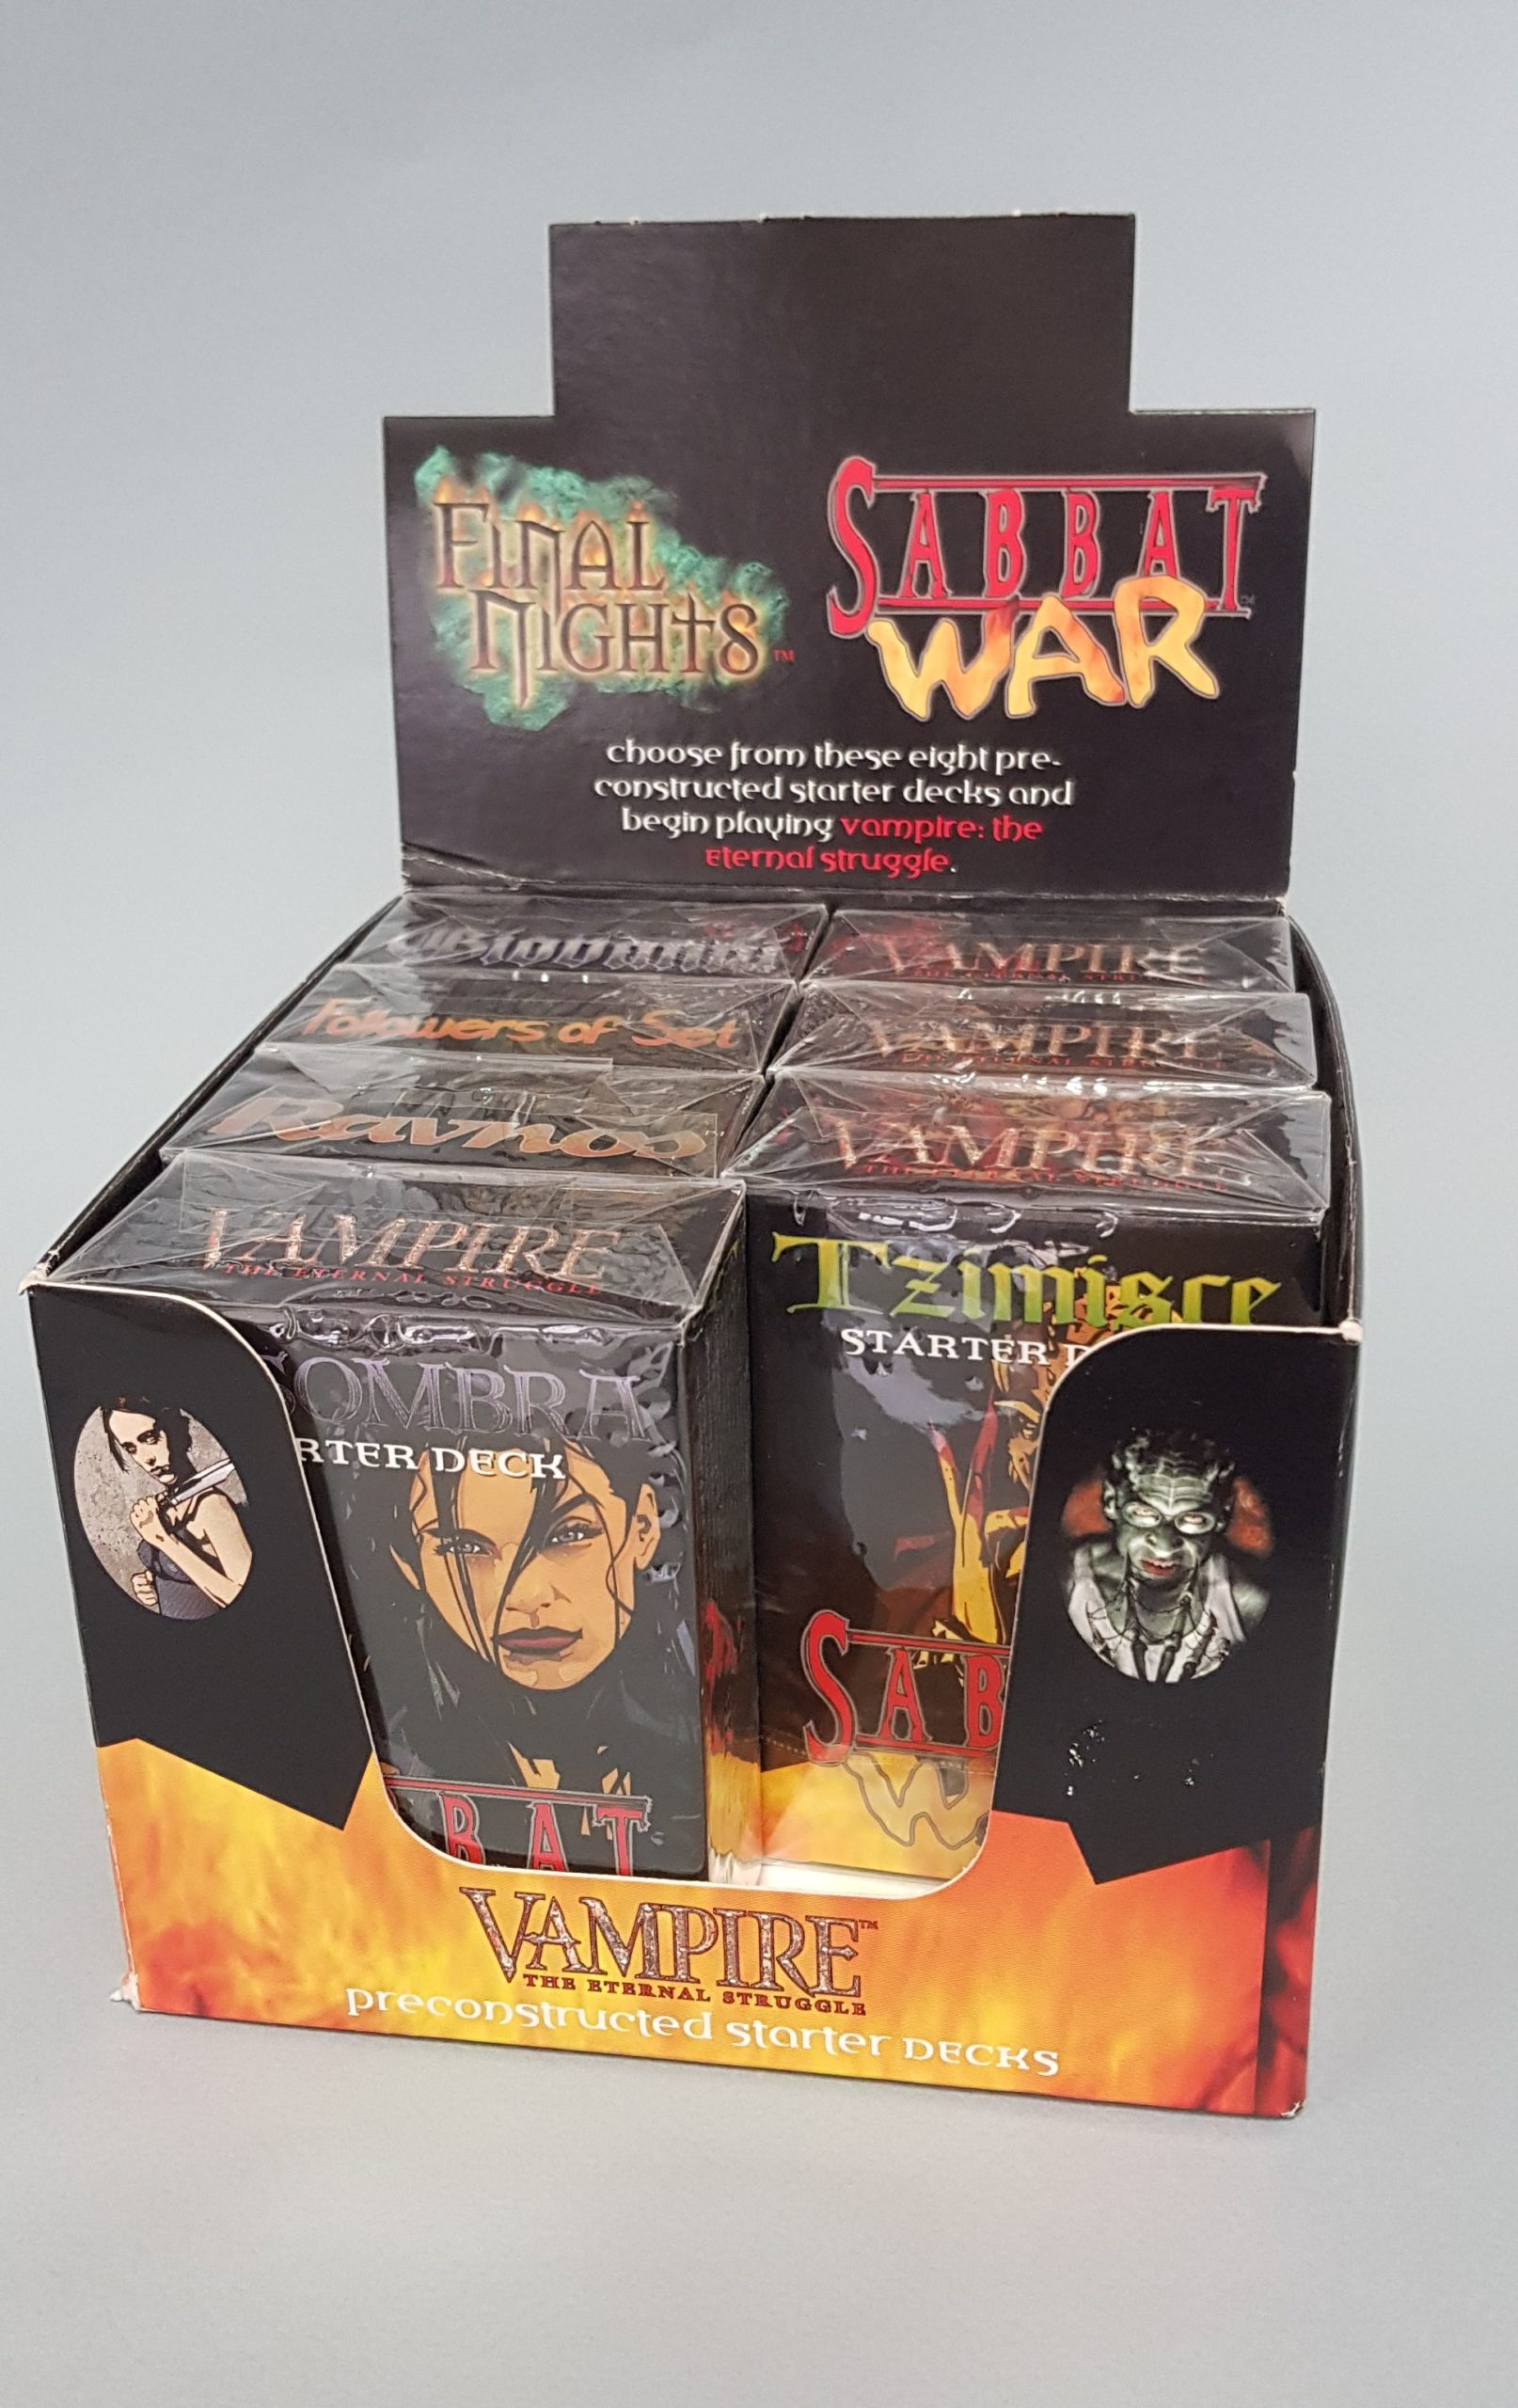 VAMPIRE The Eternal Struggle preconstructed starter decks – CARD GAME